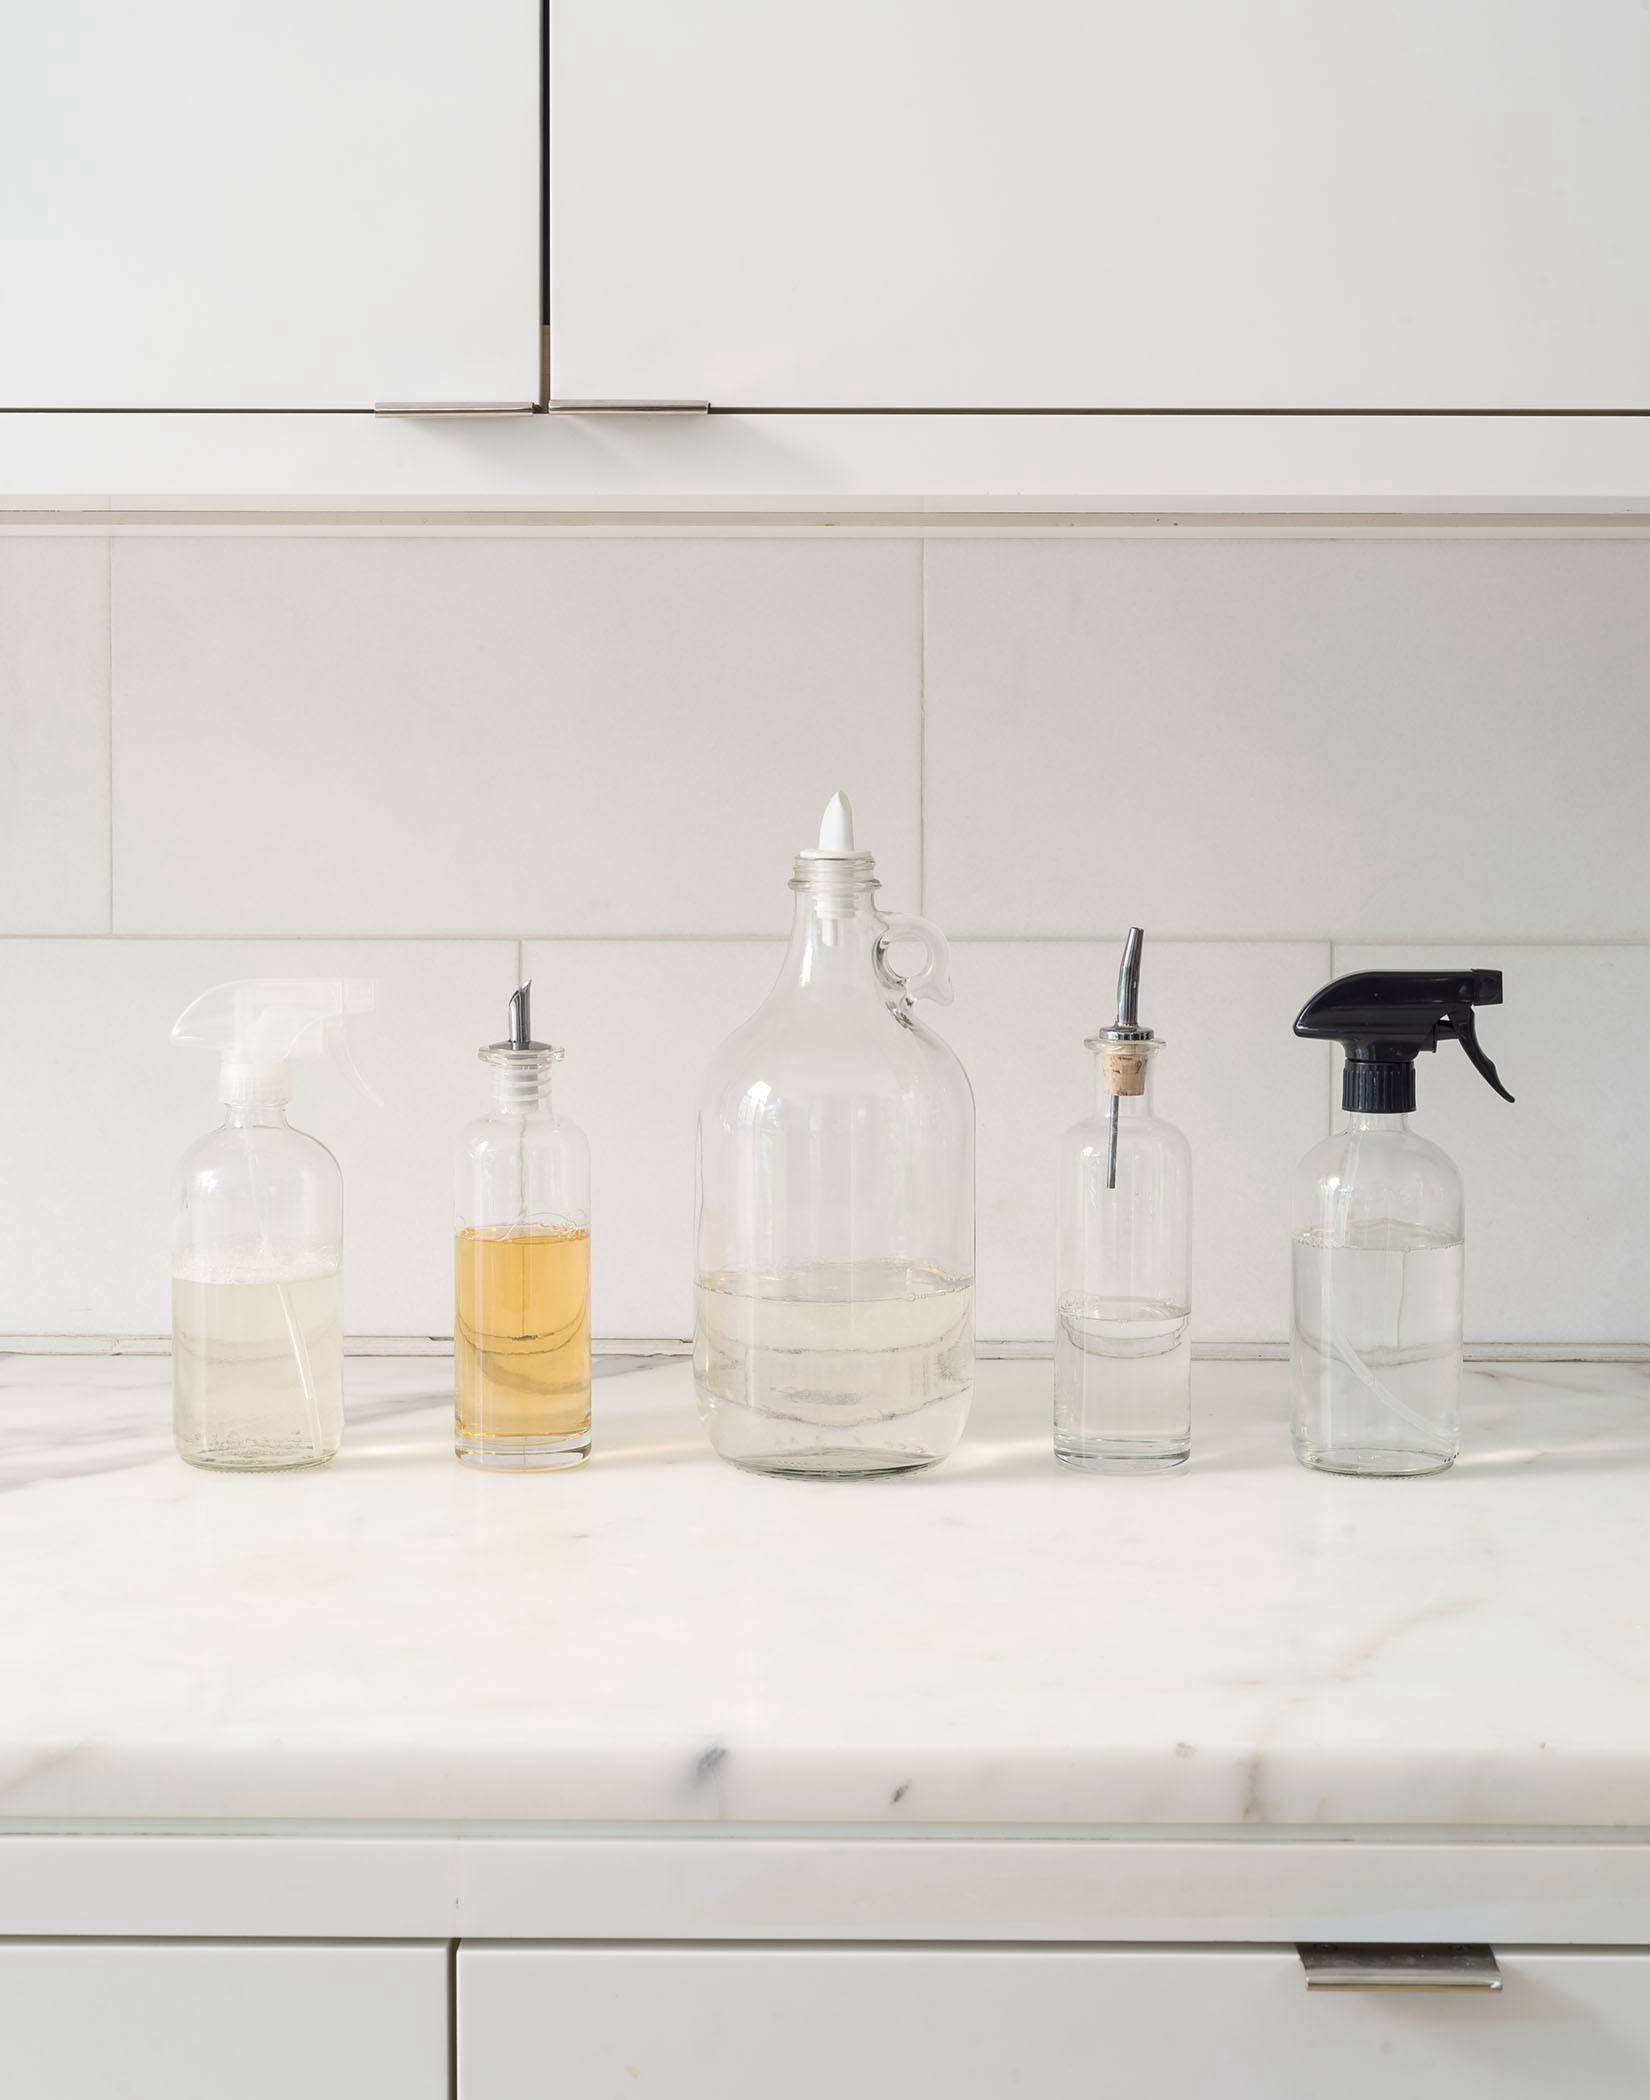 The Organized Sink: 3 Rules for Decanting Kitchen Cleaning ...